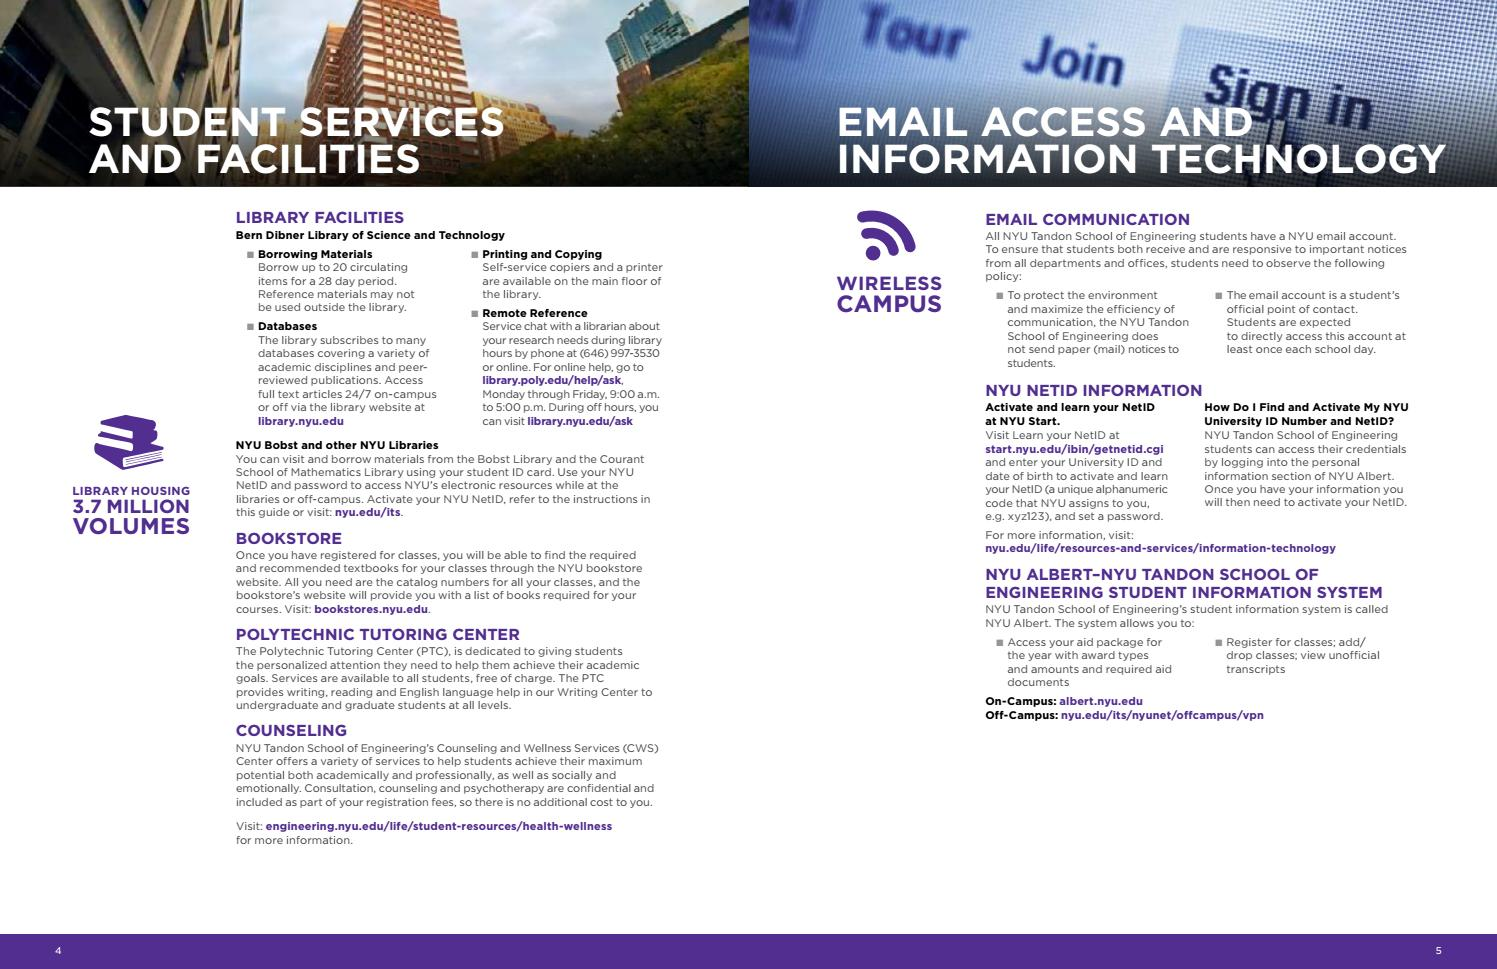 NYU Tandon School of Engineering Welcome Guide 2017 by